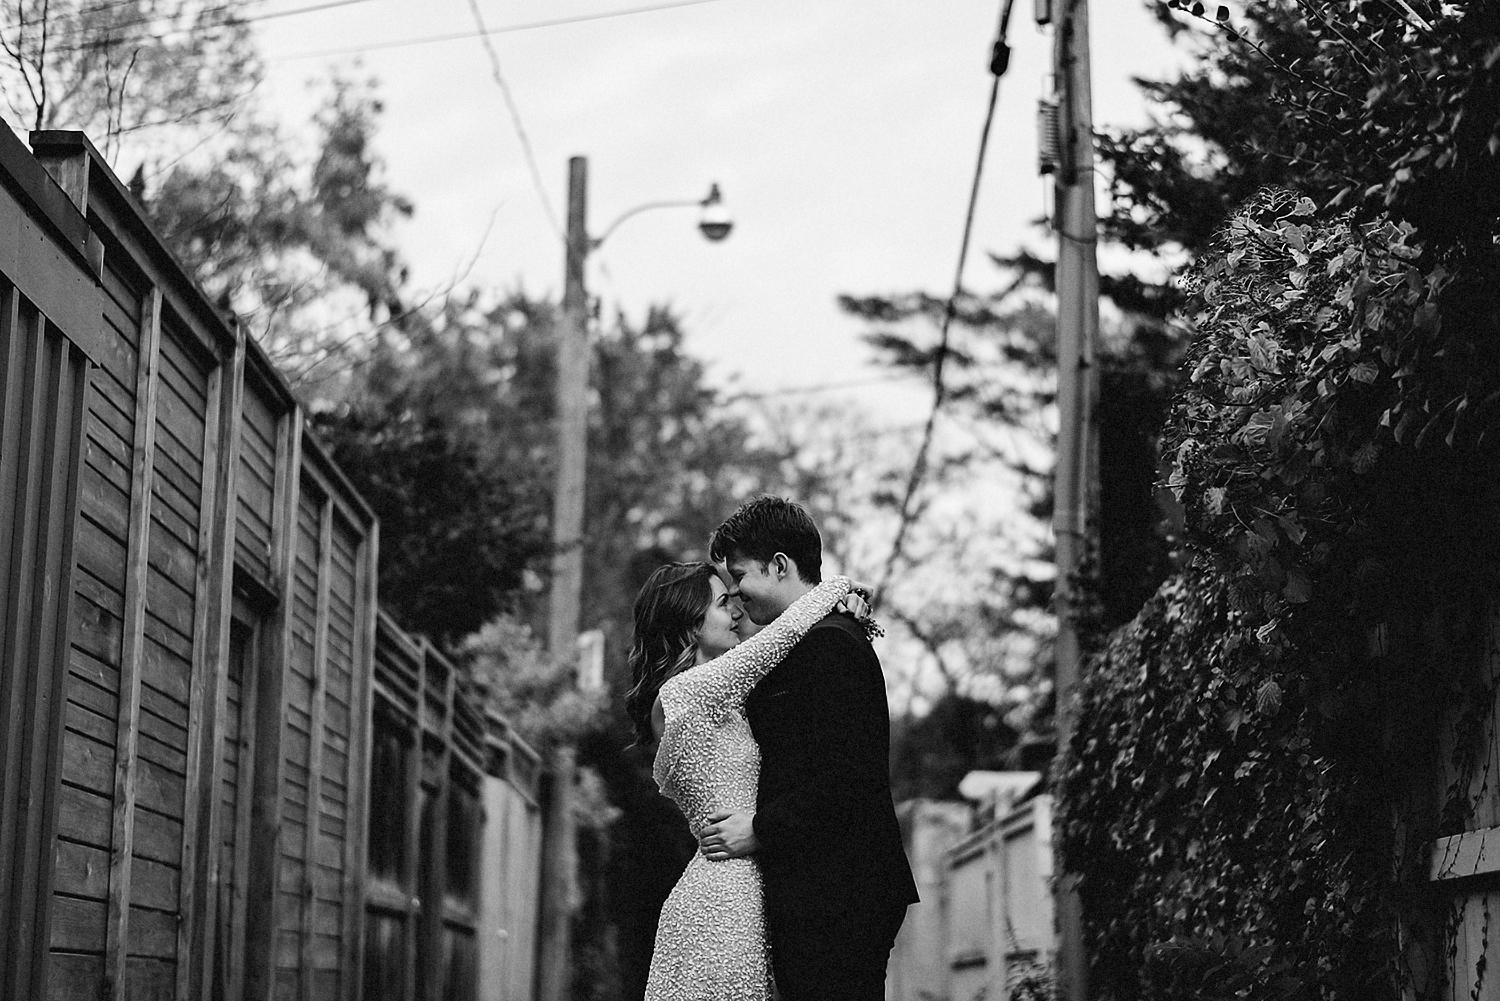 33-Best-Elopement-Photographers-Toronto-Fall-Wedding-Elopement-Modern-Vintage-Hipster-Beautiful-Alleyway-black-and-whitejpg.JPG